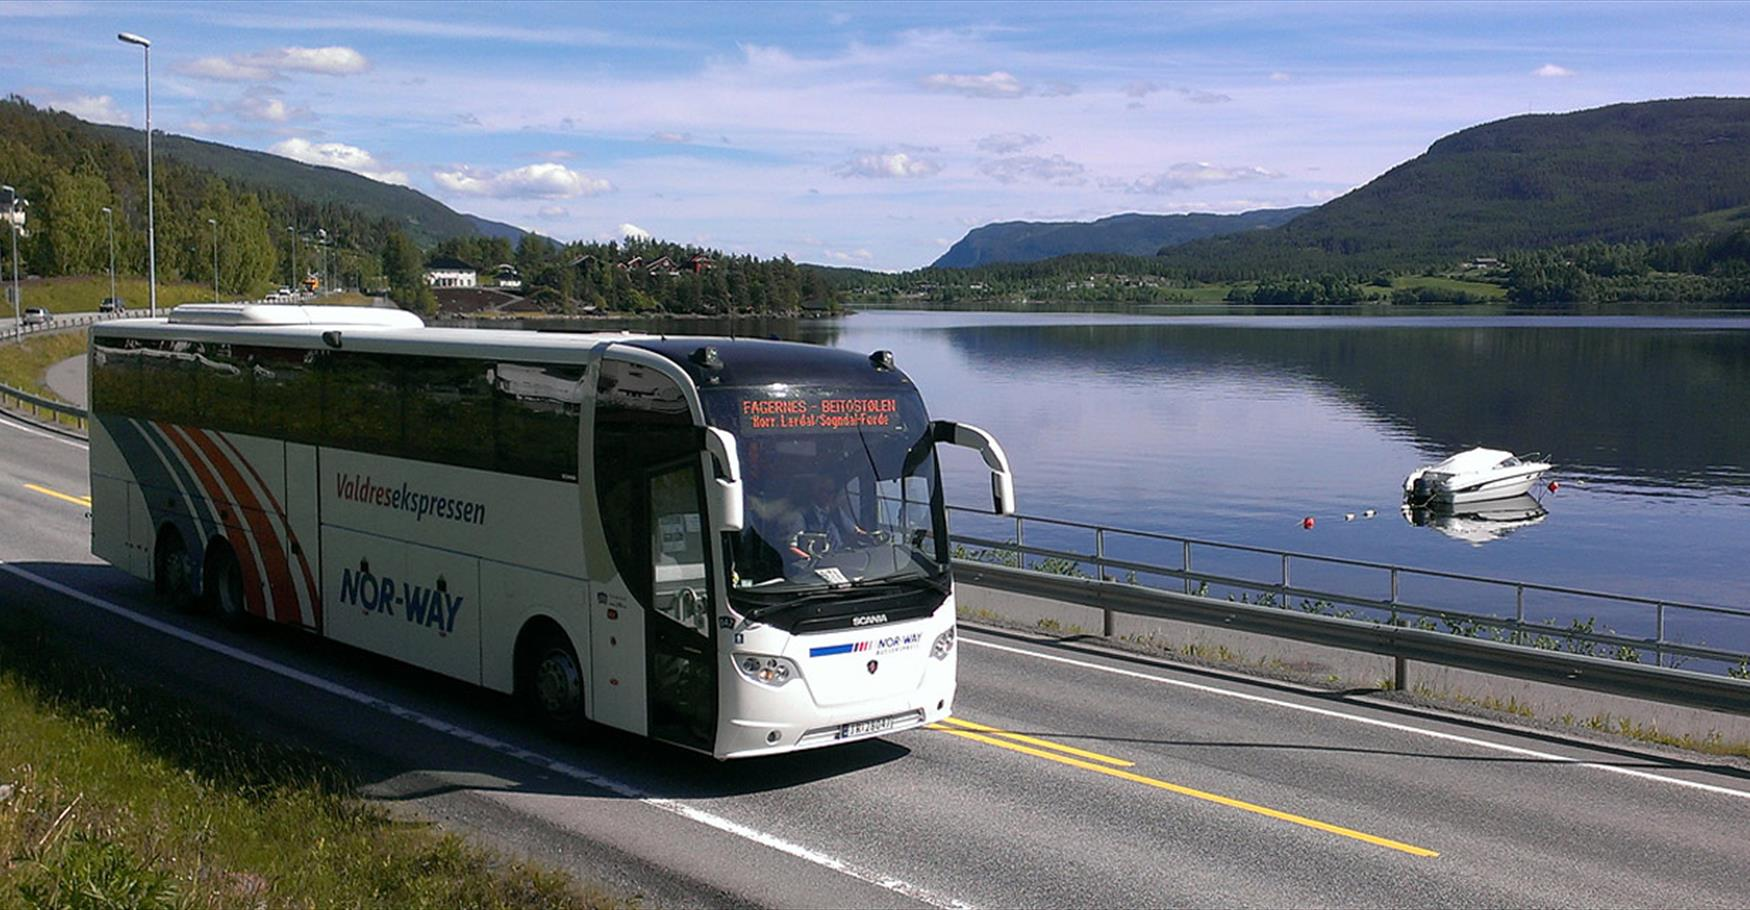 JVB operates the express coach service between Oslo and Valdres.